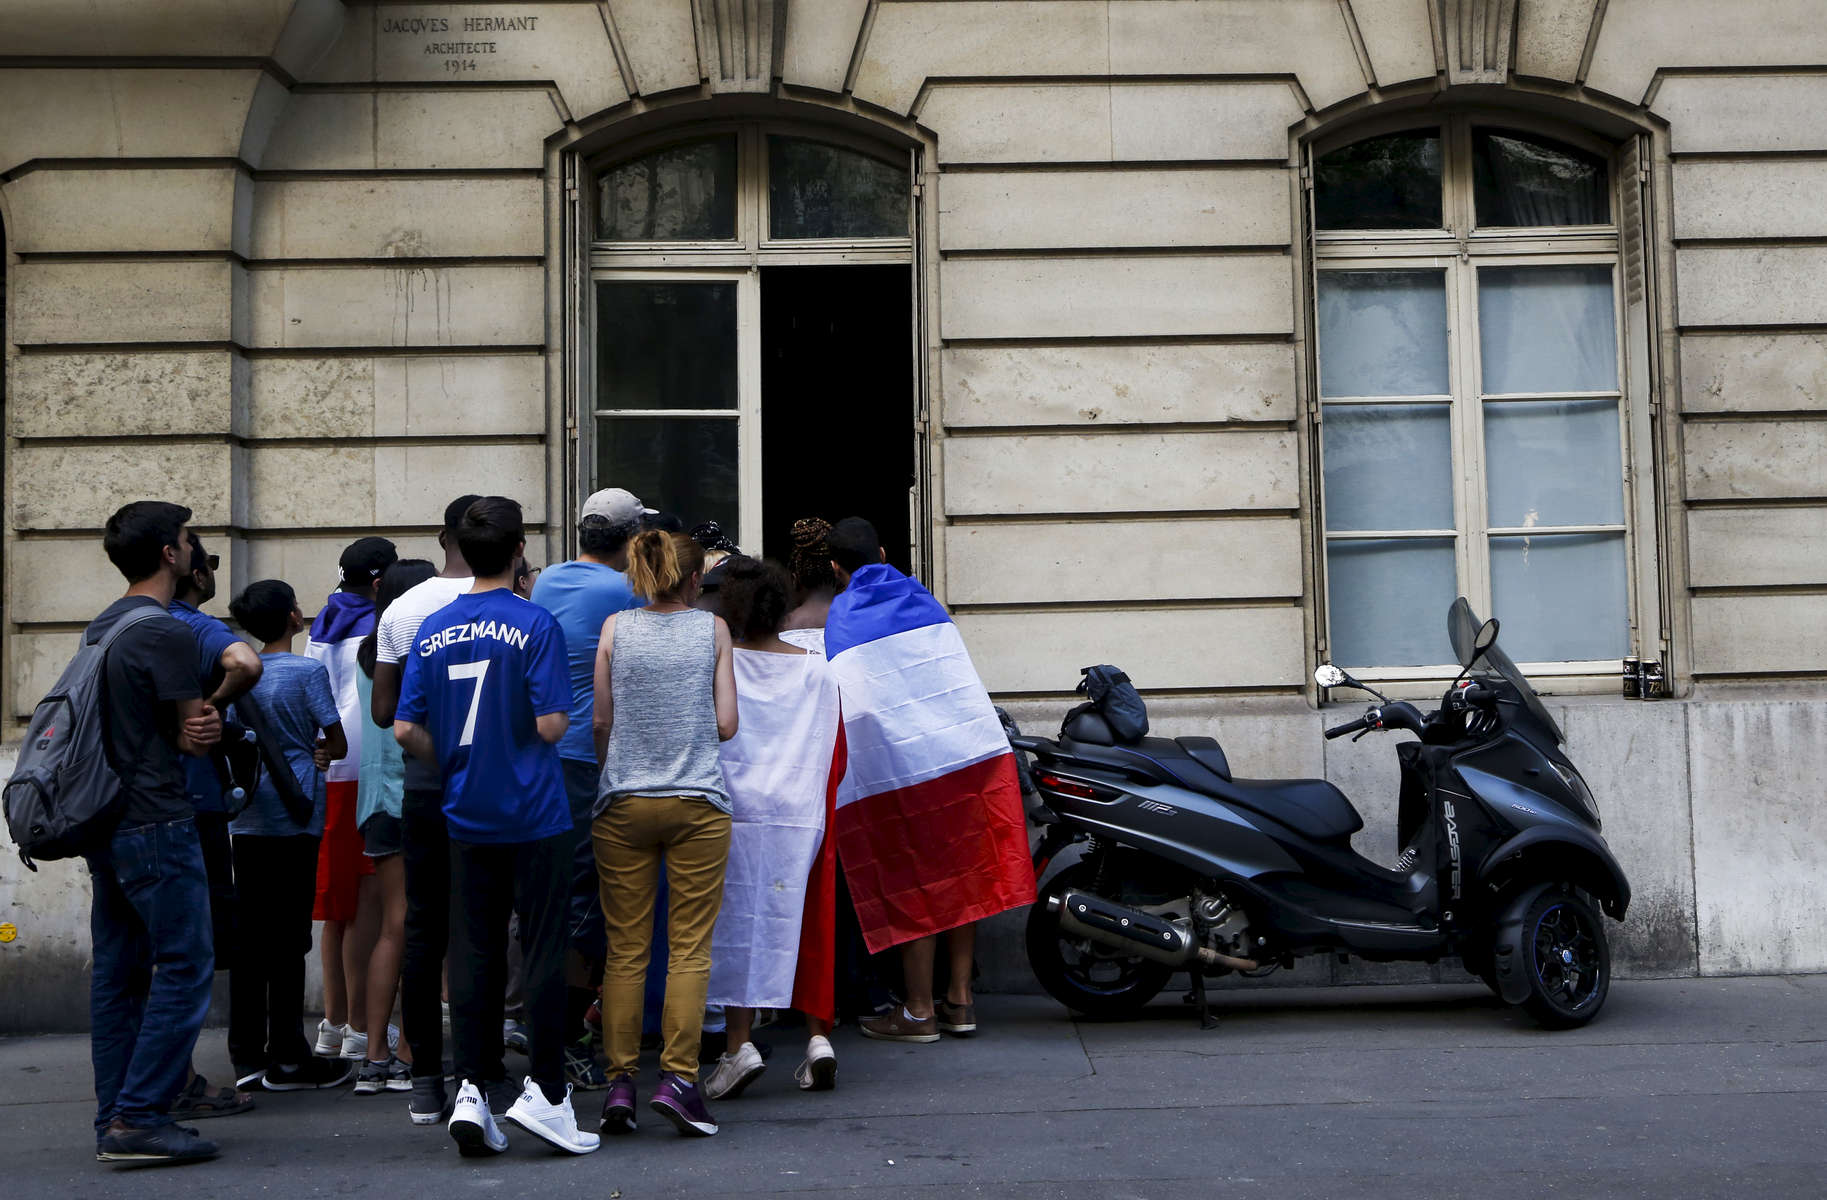 Supporters try to watch the World Cup Soccer final on the TV of a private apartment, on July 15, 2018, in Paris, France.On the historical Soccer World Cup final between France and Croatia, fans were invited to watch the game on giant screens set up in the Champs de Mars, in front of the Eiffel Tower in Paris. But this Fan Zone was full long before the start of the game, leaving thousand of supporters scrambling to find a place to watch the game close by. The nearby and usually quiet coffees and restaurants were quickly over flooded. But for the next two and a half hours, it did not matter to watch the game from the middle of the streets. Very few cars were circulating, because almost everyone in France was watching, or trying to watch the game.